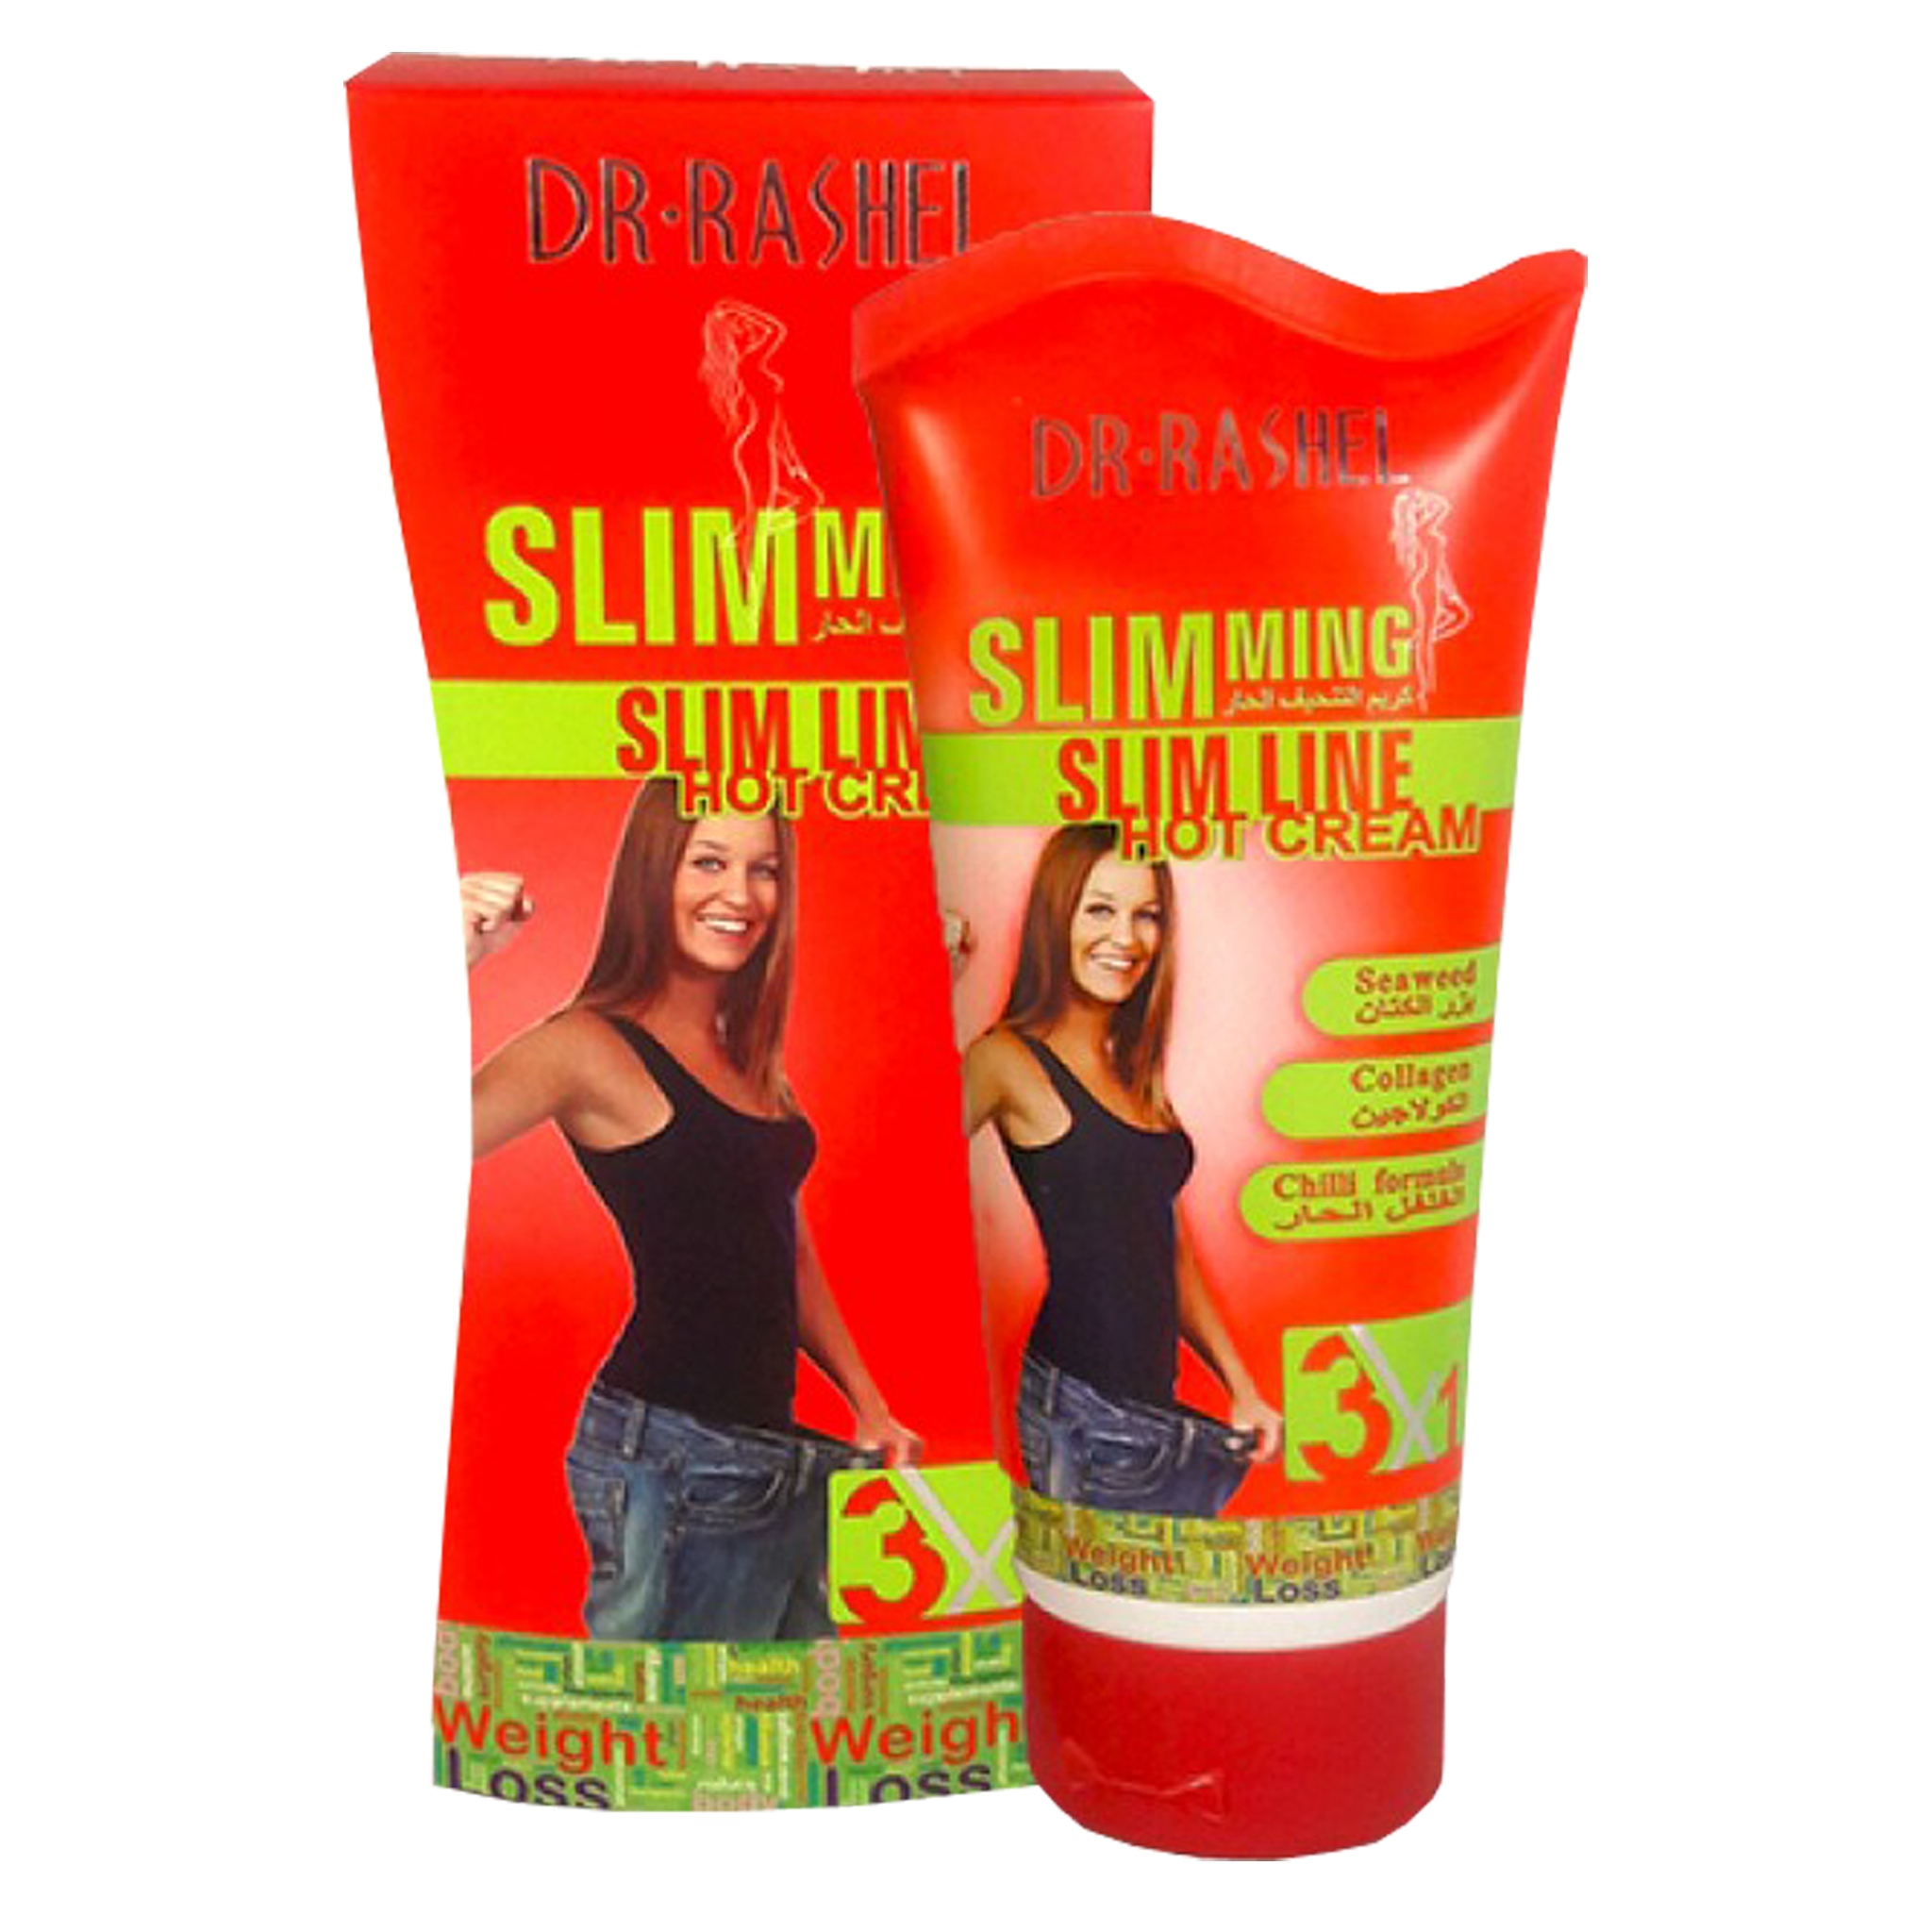 Dr Rashel Slimming Hot Cream 3-1. 150g - Greatest deals